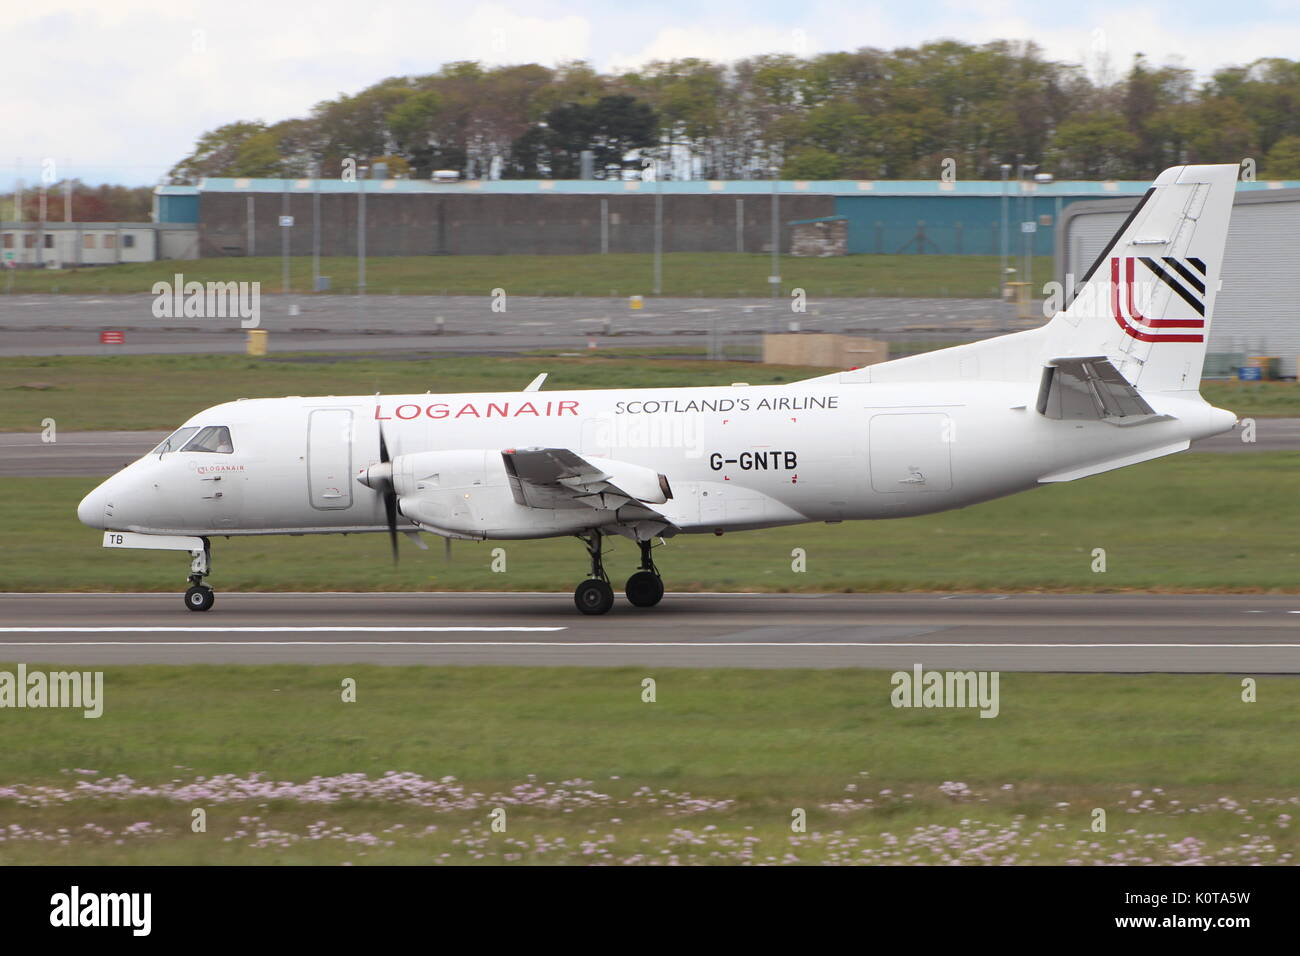 G-GNTB, a Saab 340 operated by Loganair, during training at Glasgow Prestwick International Airport in Ayrshire. Stock Photo